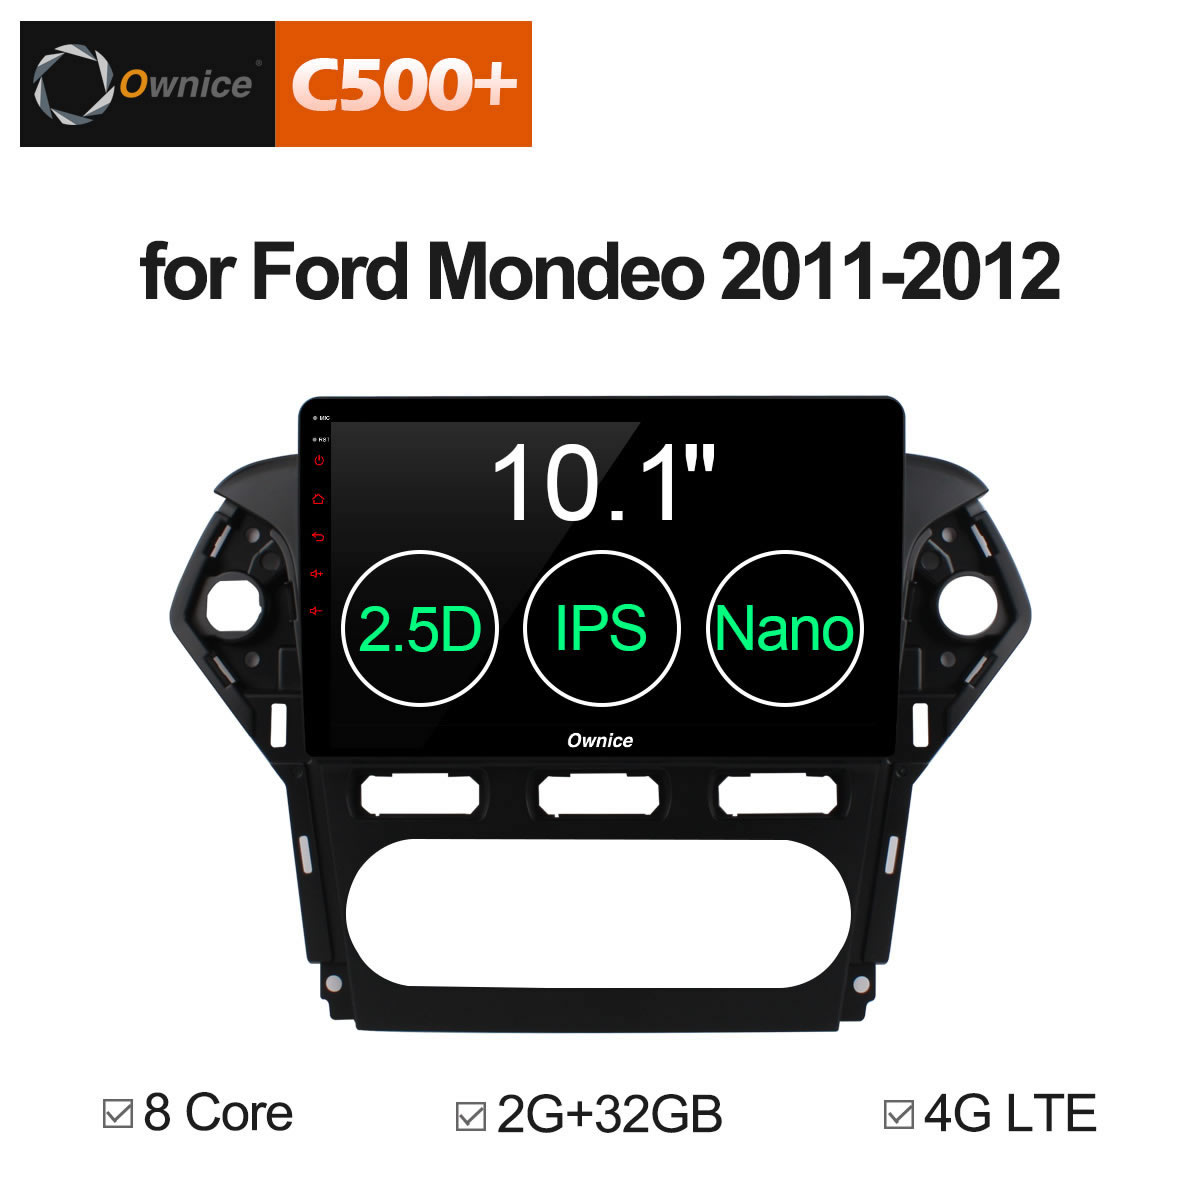 Ownice C500 + G10 10.1 Android 8.1 Octa Core autoradio pour Ford Mondeo 2011 2012 GPS Audio dvd prise en Charge Du lecteur 32g ROM 4g LTE DVR